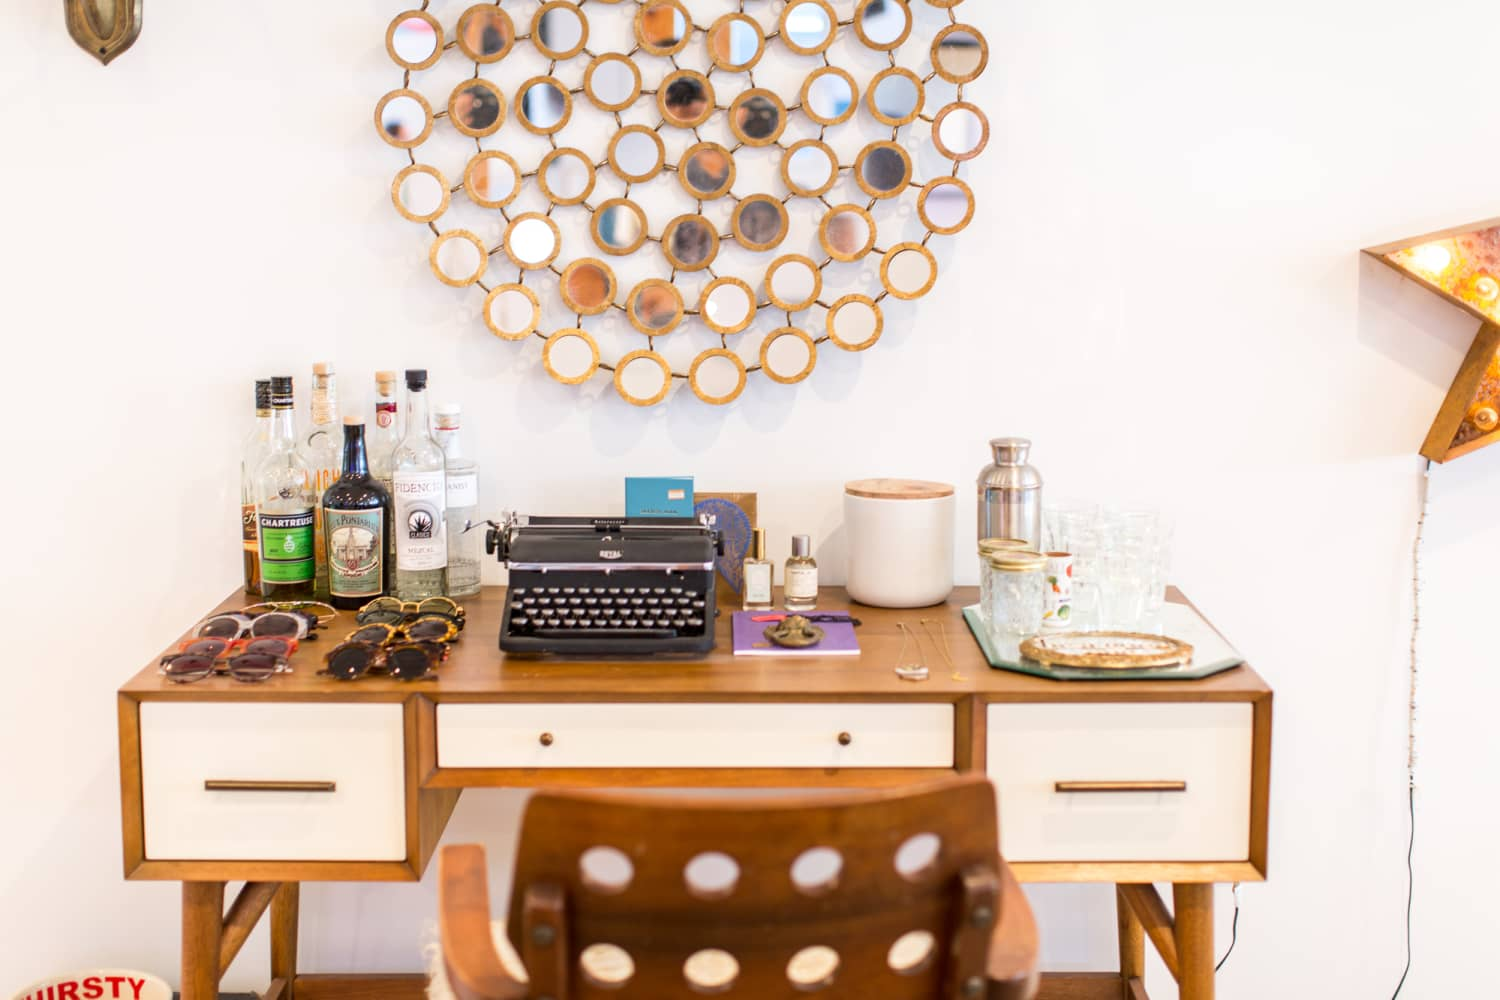 I Worked From Home For A Year Before Coronavirus—But Here Are 6 Things I Needed to Switch Up